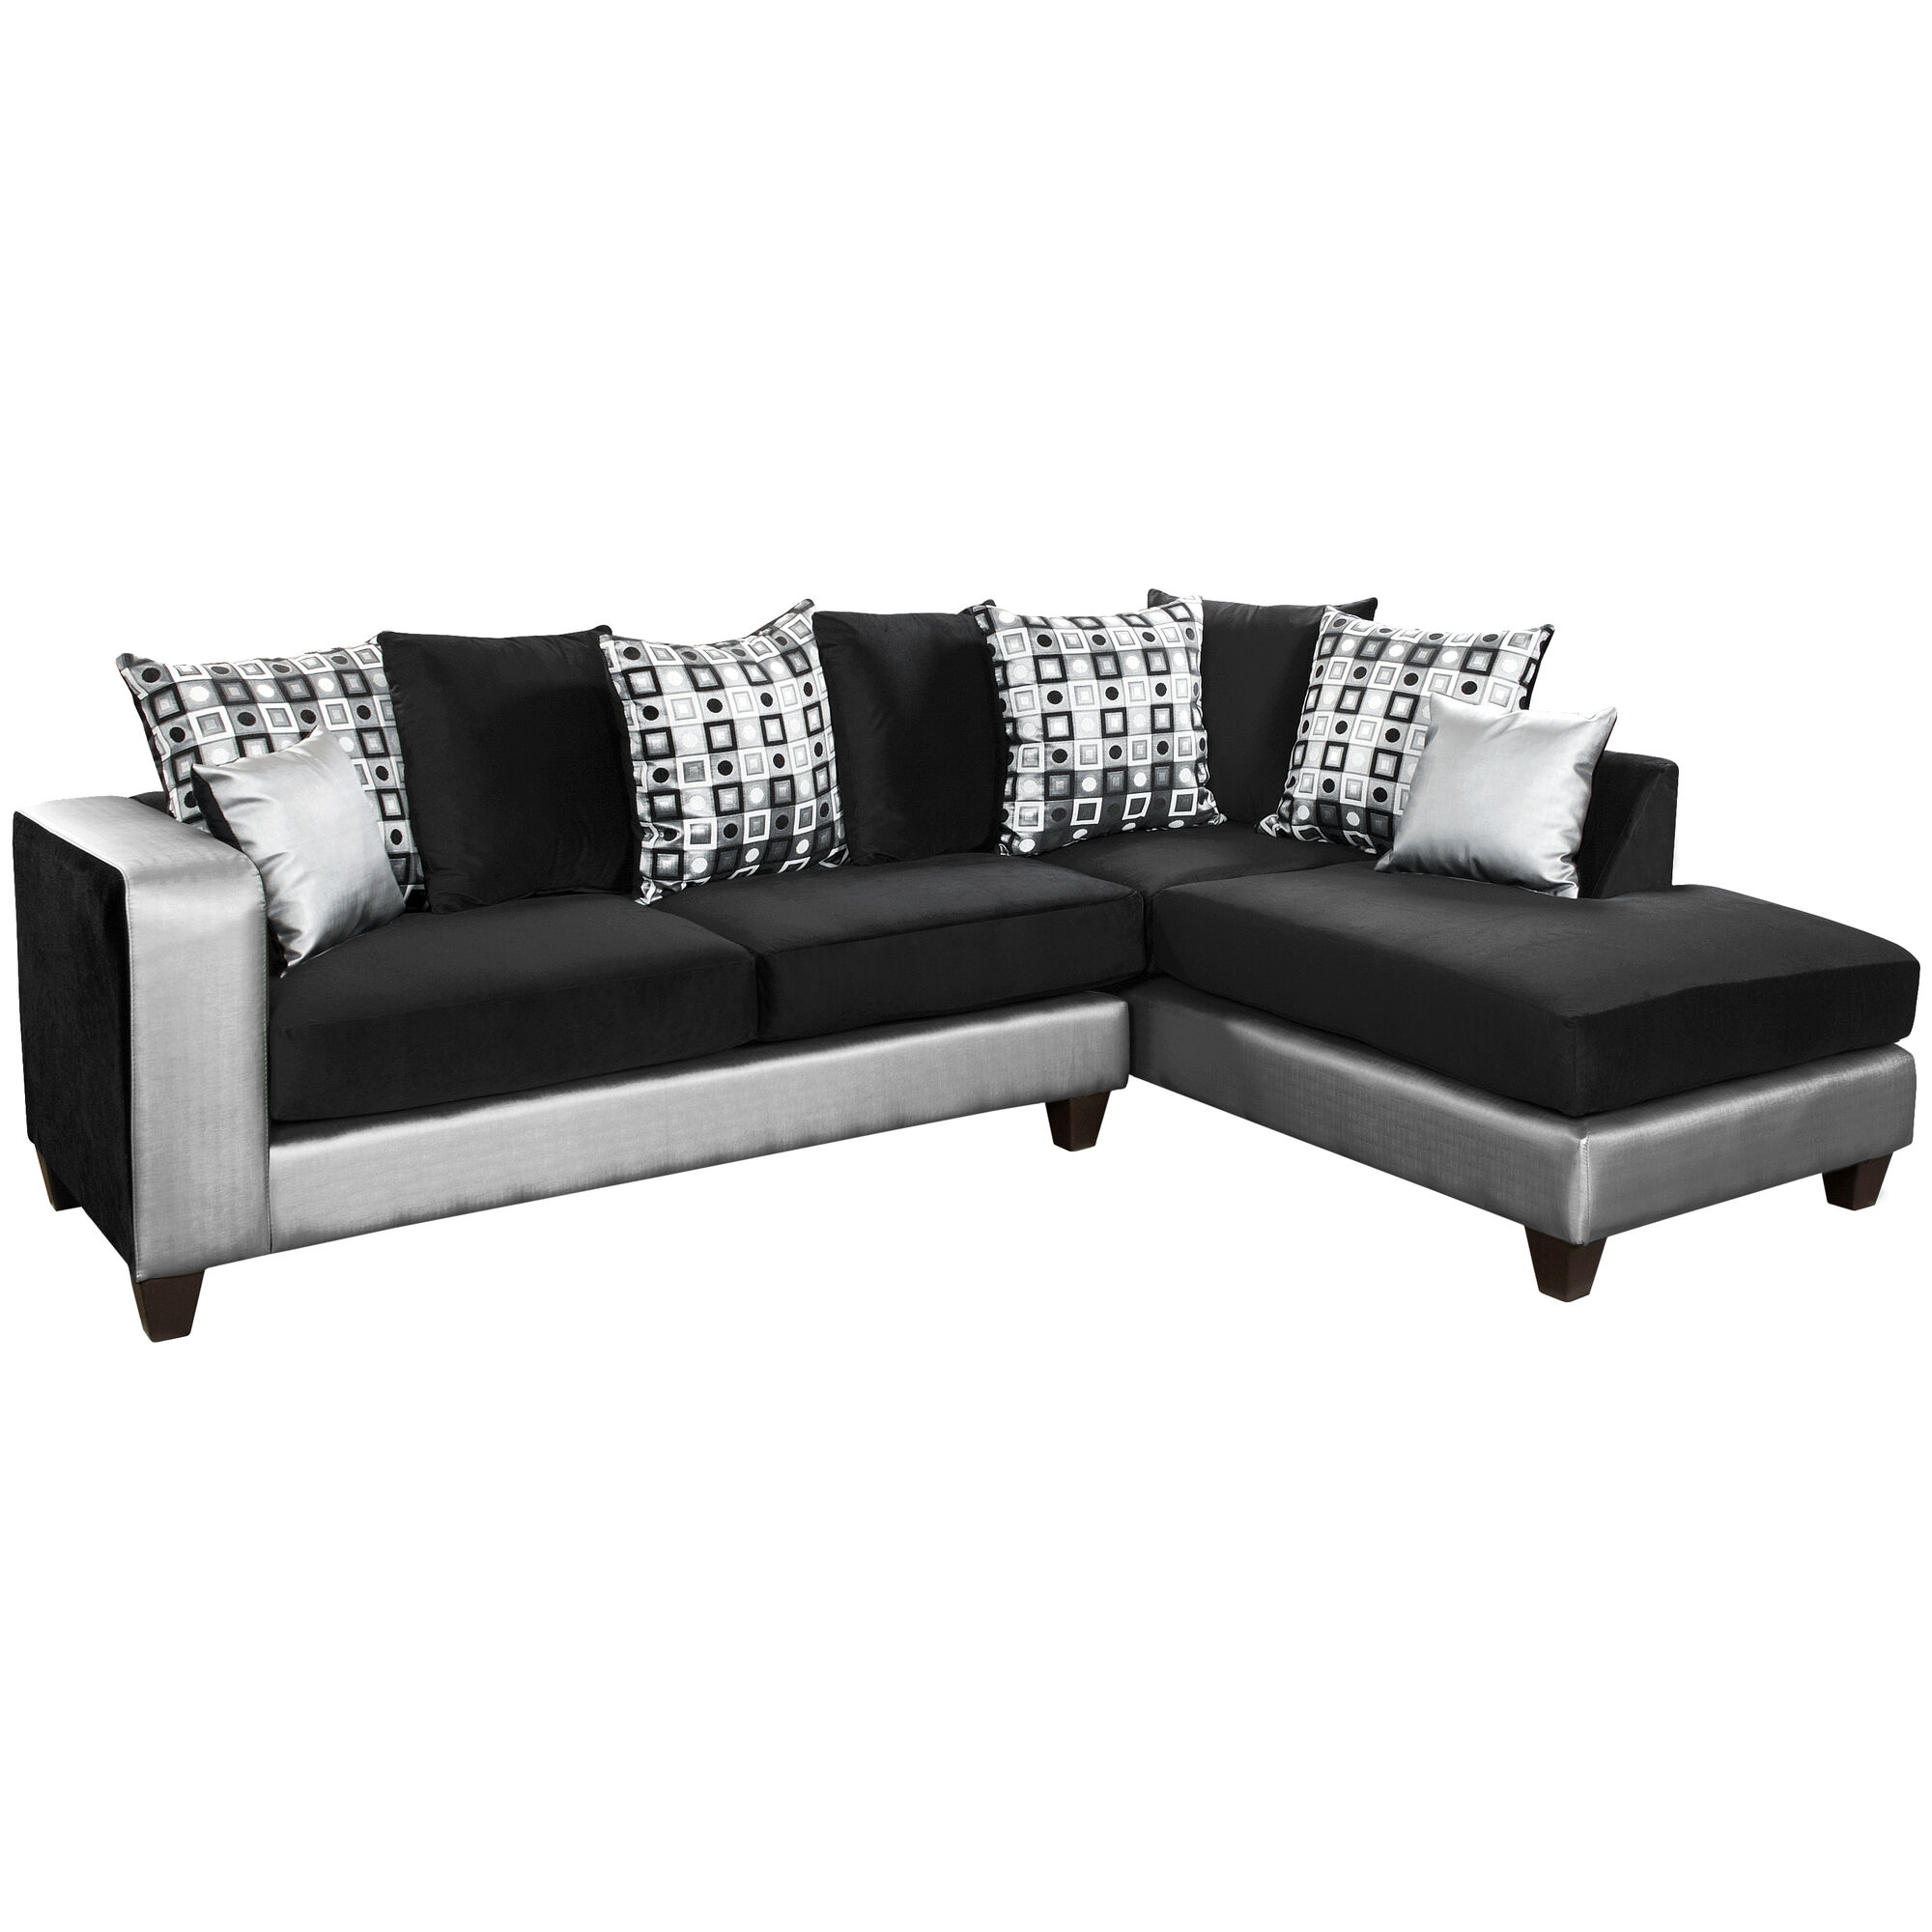 Our Riverstone Implosion Black Velvet Sectional With Black